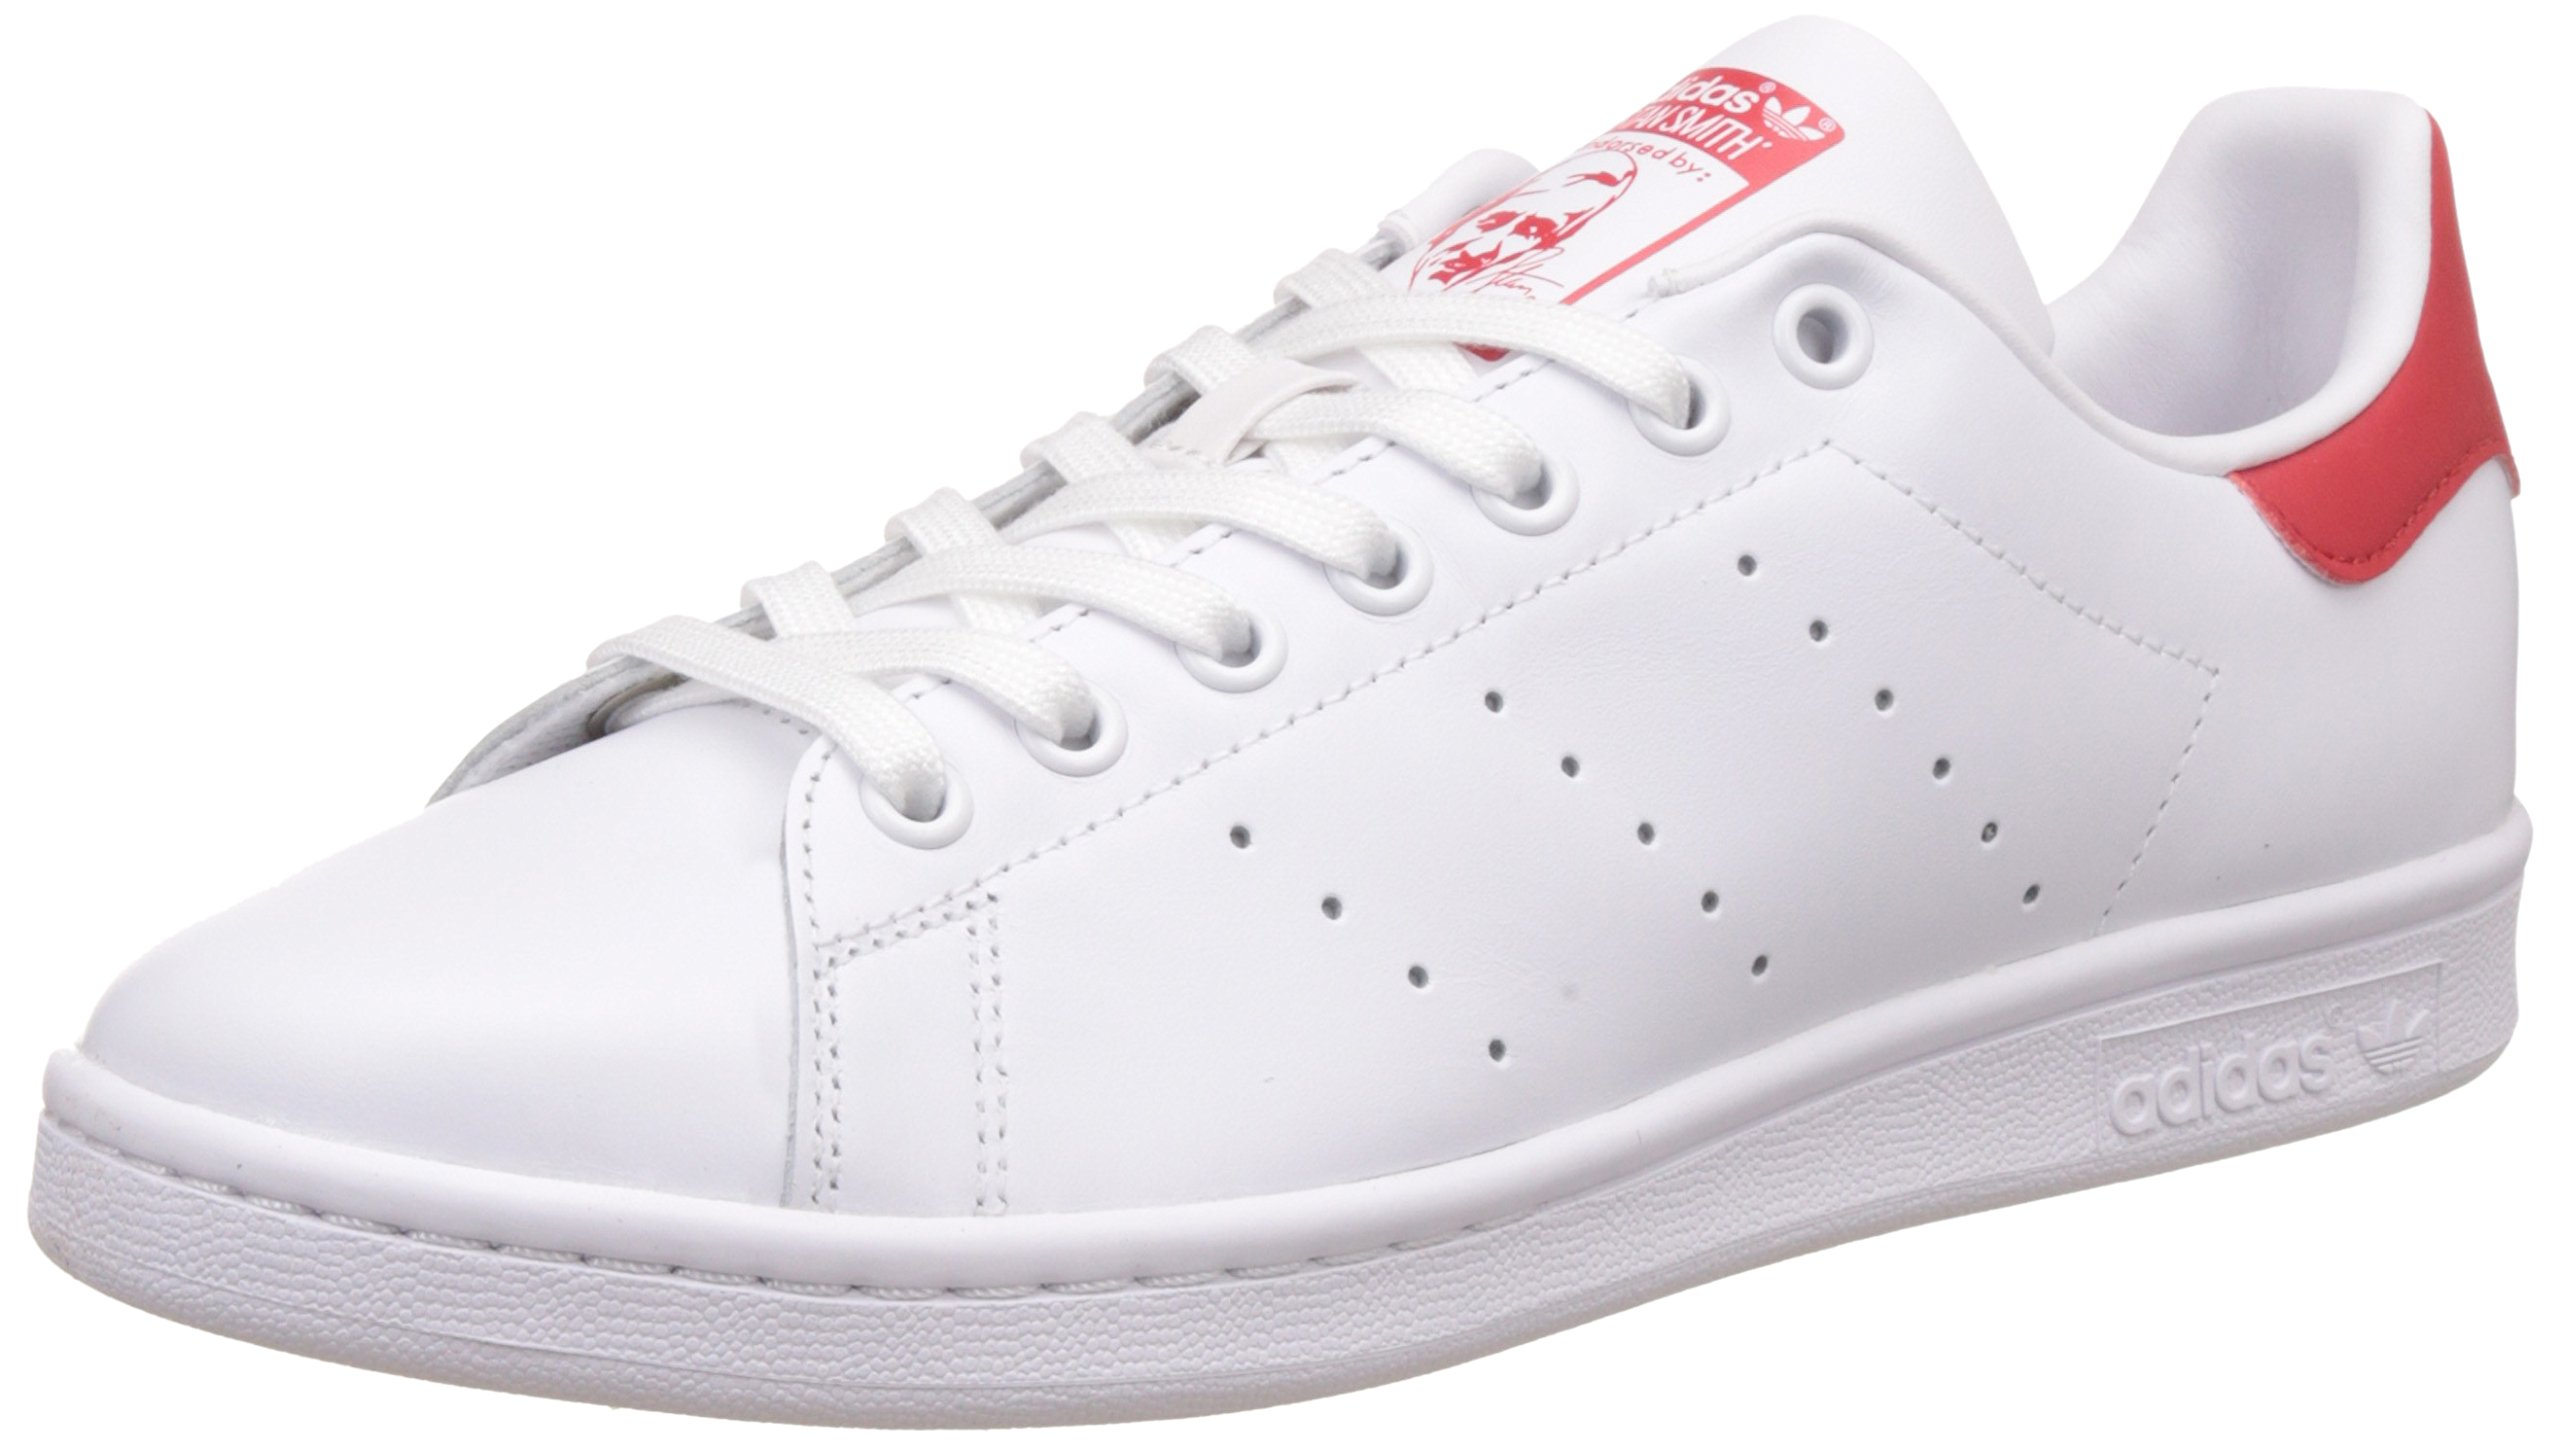 Chaussures adidas Stan Smith M20326 RunwhtRunwhtColred